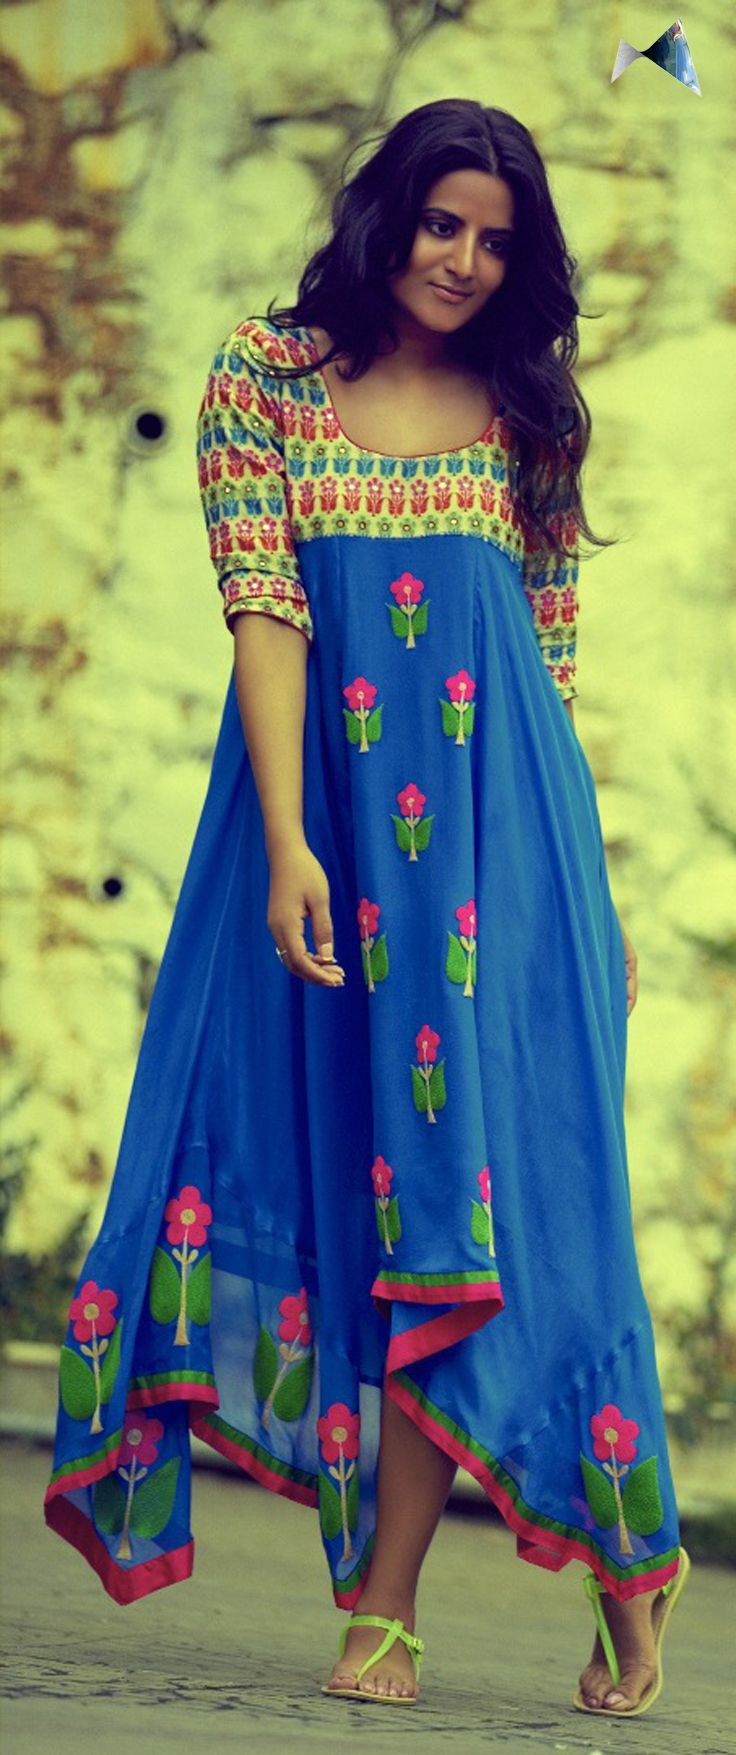 Traditional Indian prints used so beautifully in modern contemporary clothing by designer Divya Anand.